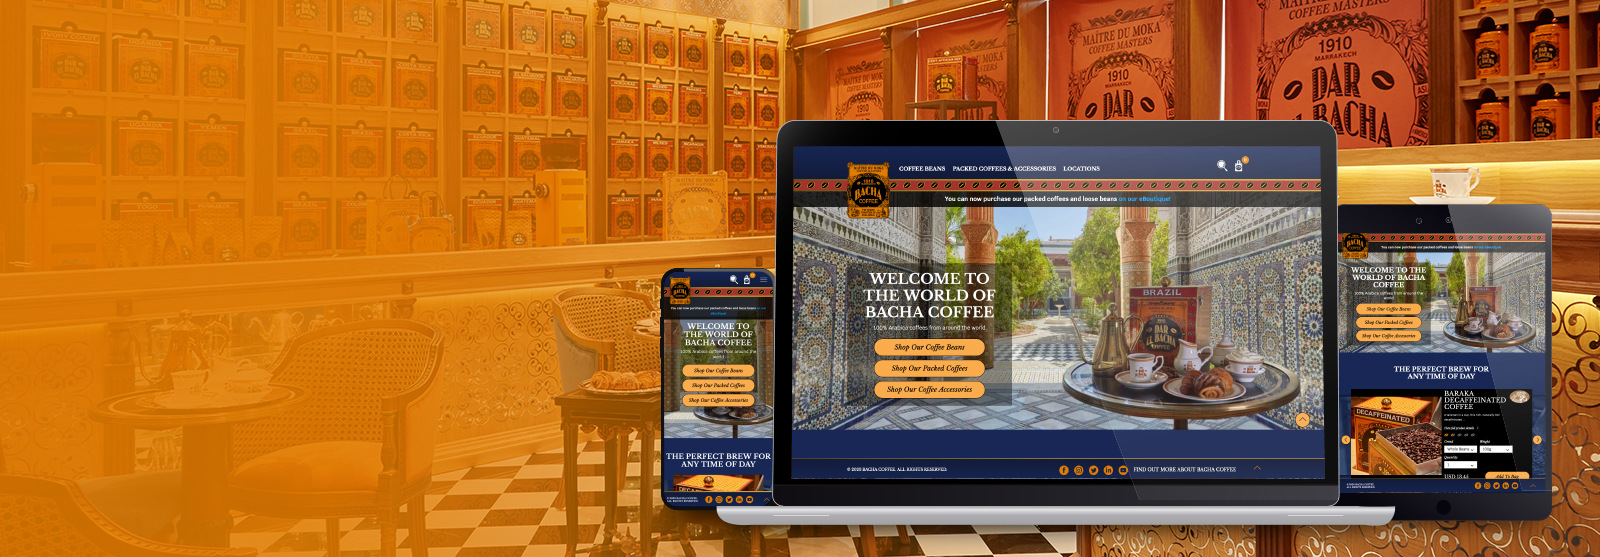 BACHA COFFEE ECOMMERCE WEBSITE UX, DESIGN & DEVELOPMENT